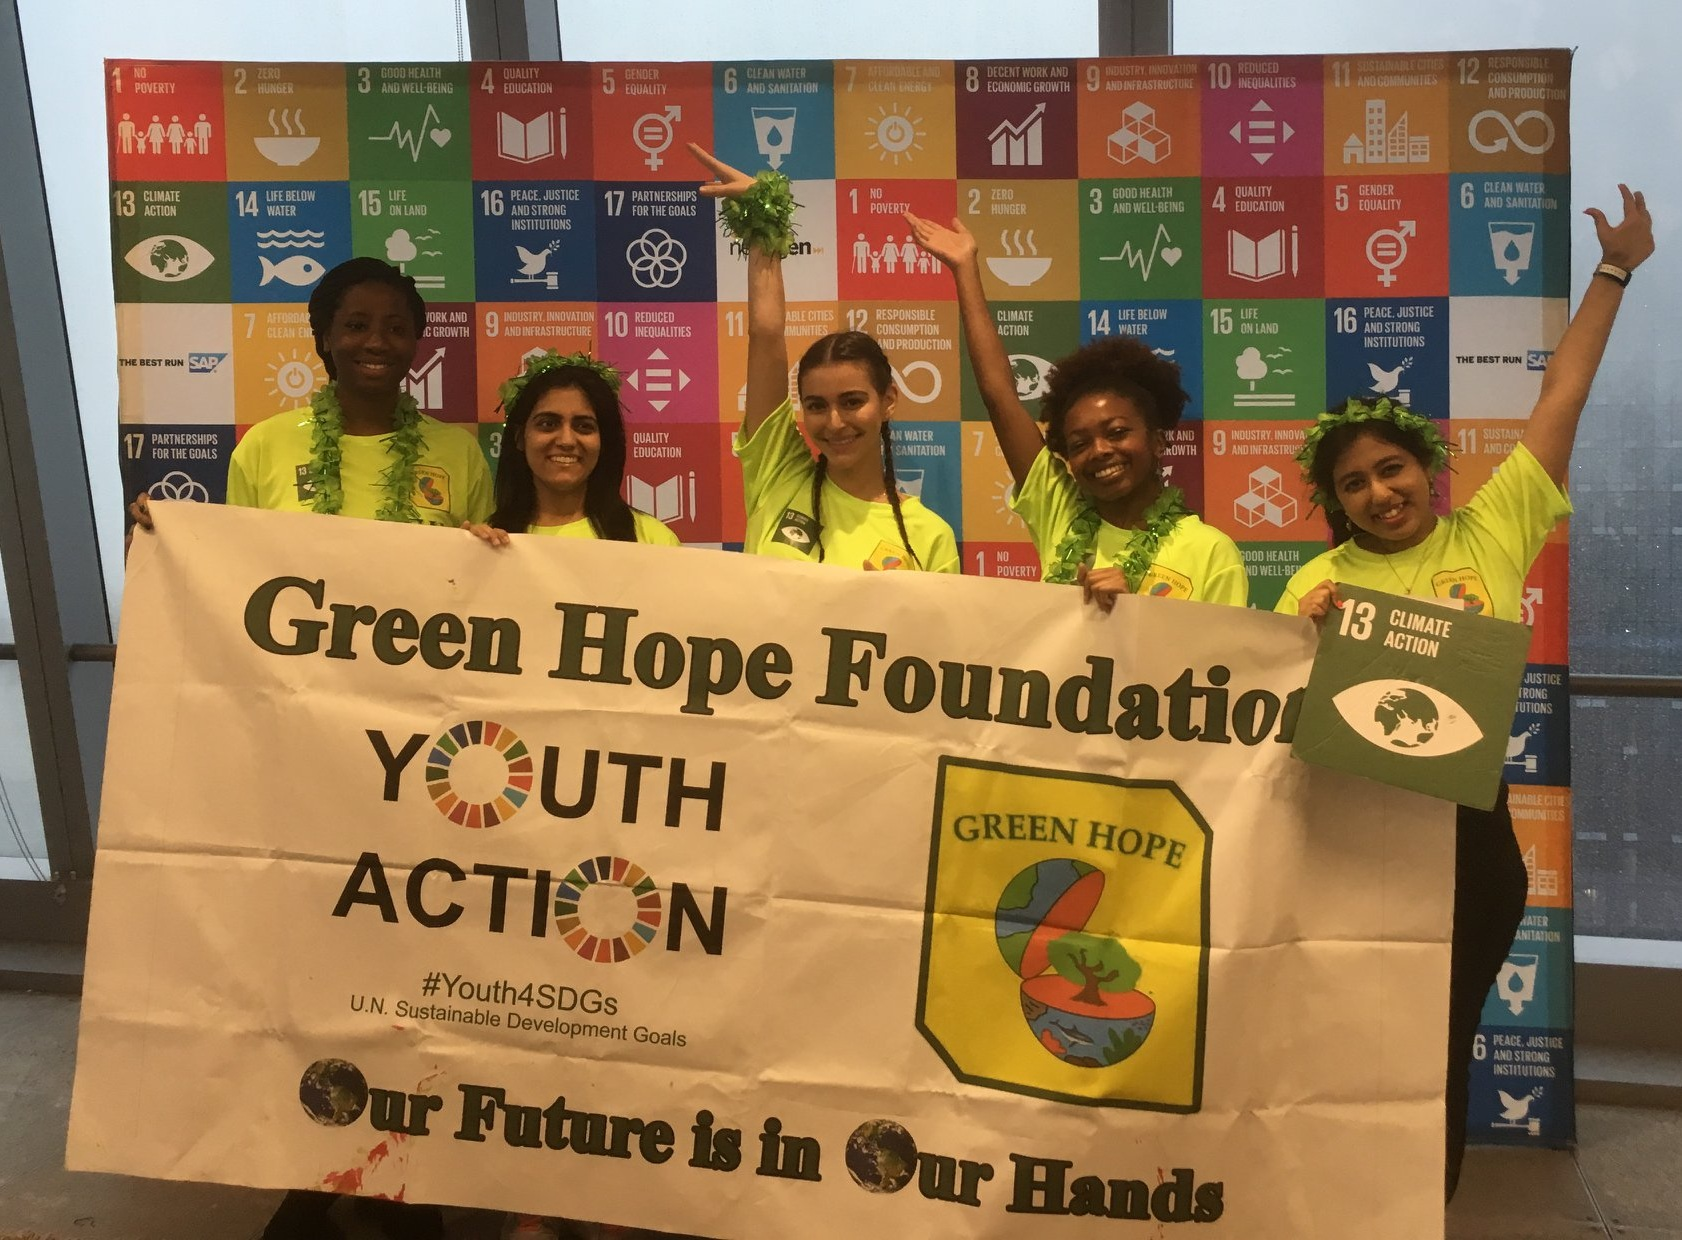 Team Green Hope Foundation - Global Goal 13 - Climate Action